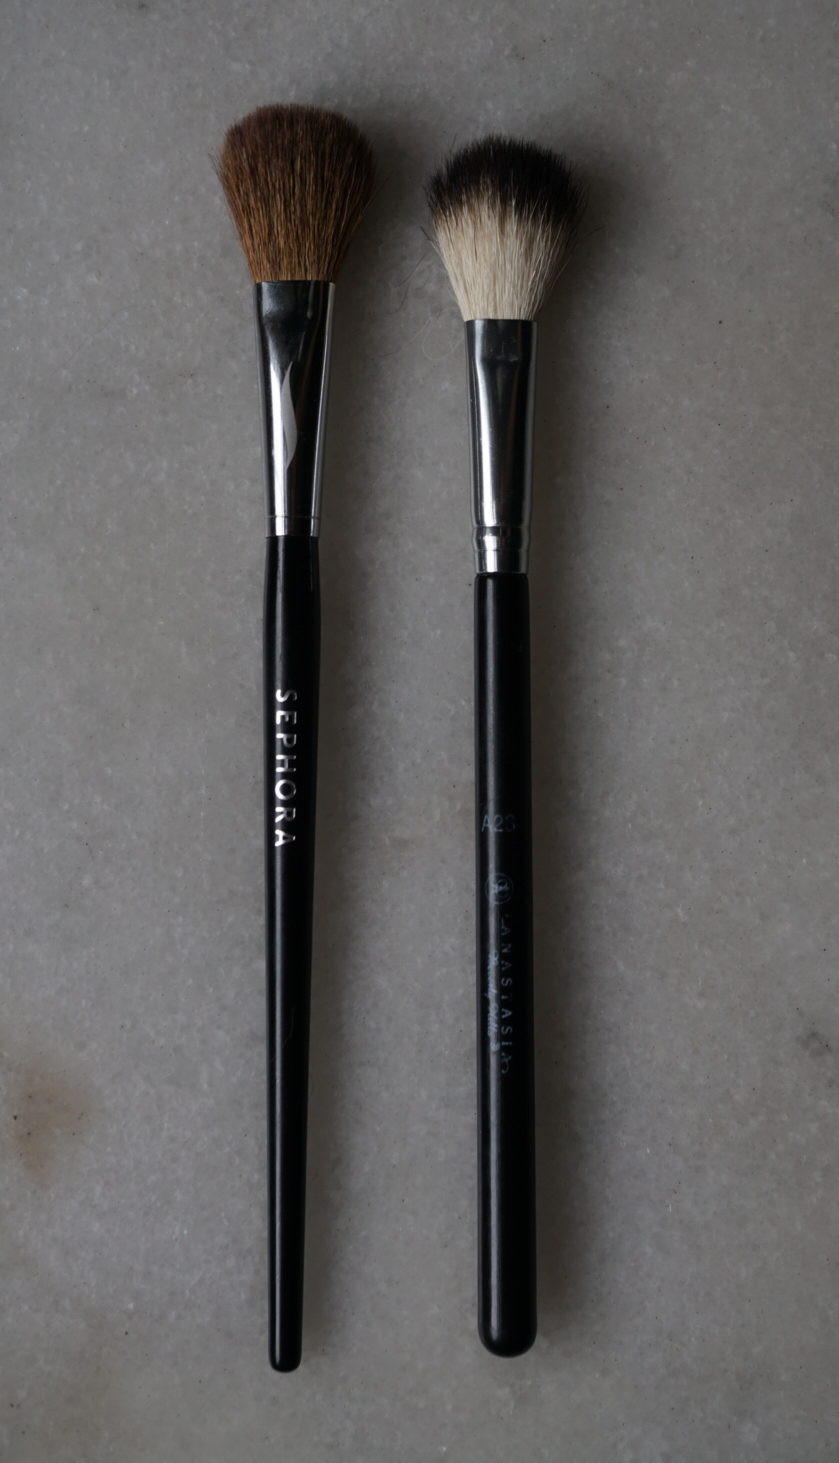 Synthetic makeup brushes morphe